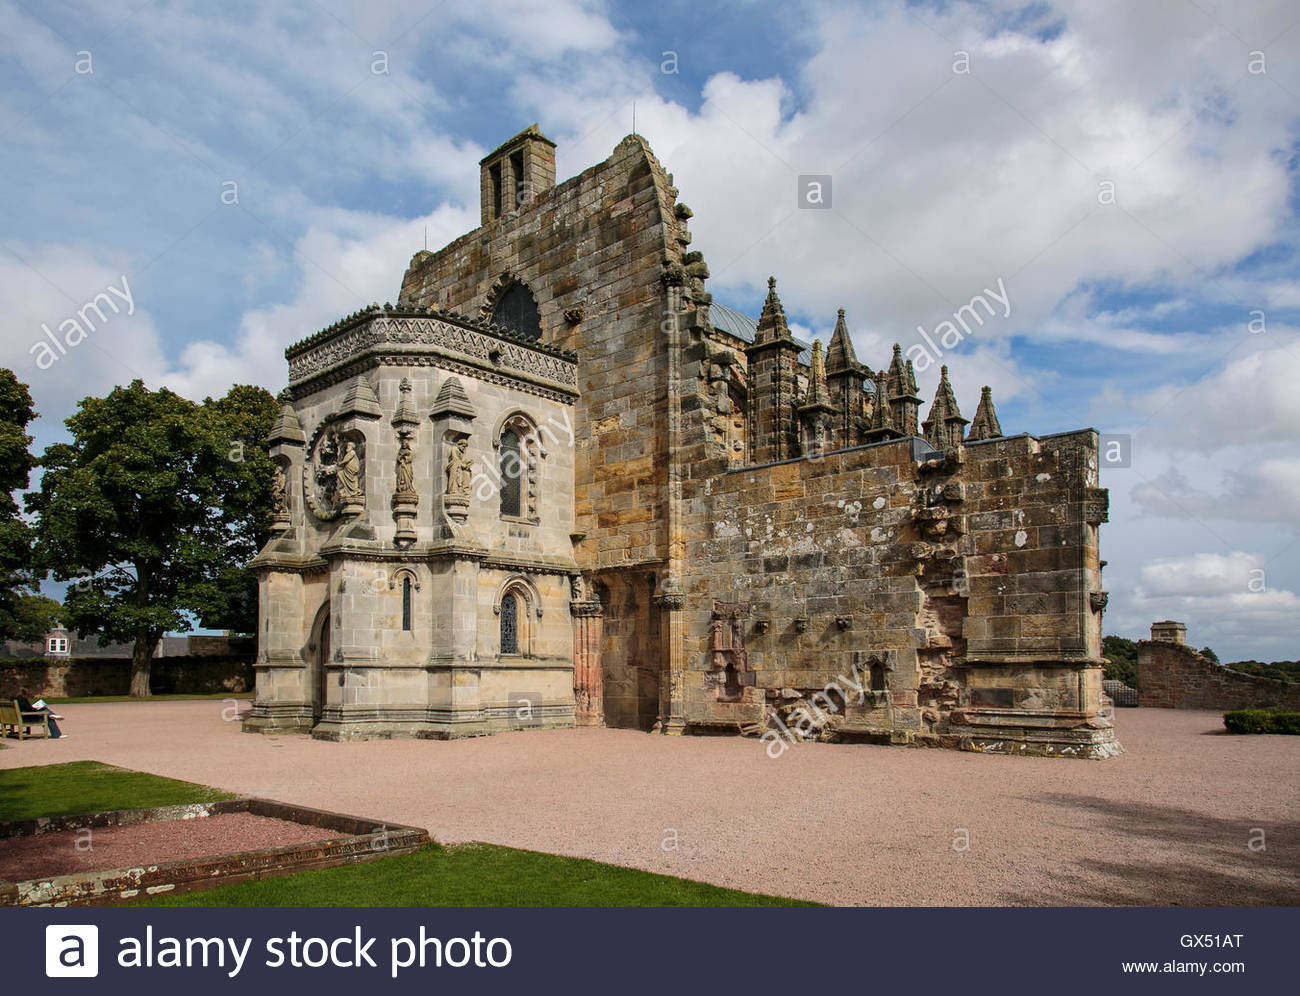 The famous and historic Rosslyn Chapel in Scotland - Stock Image